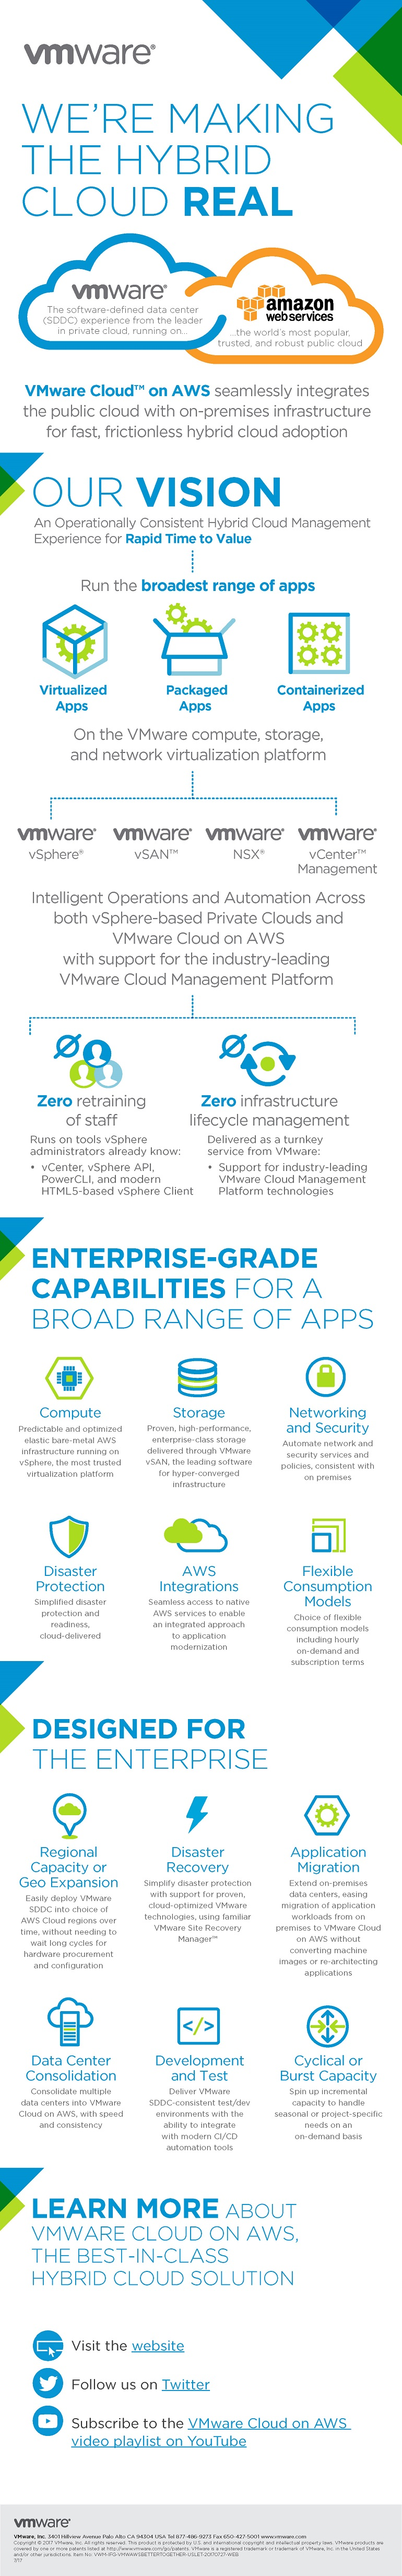 VMware Cloud on AWS Infographic. Translated below.